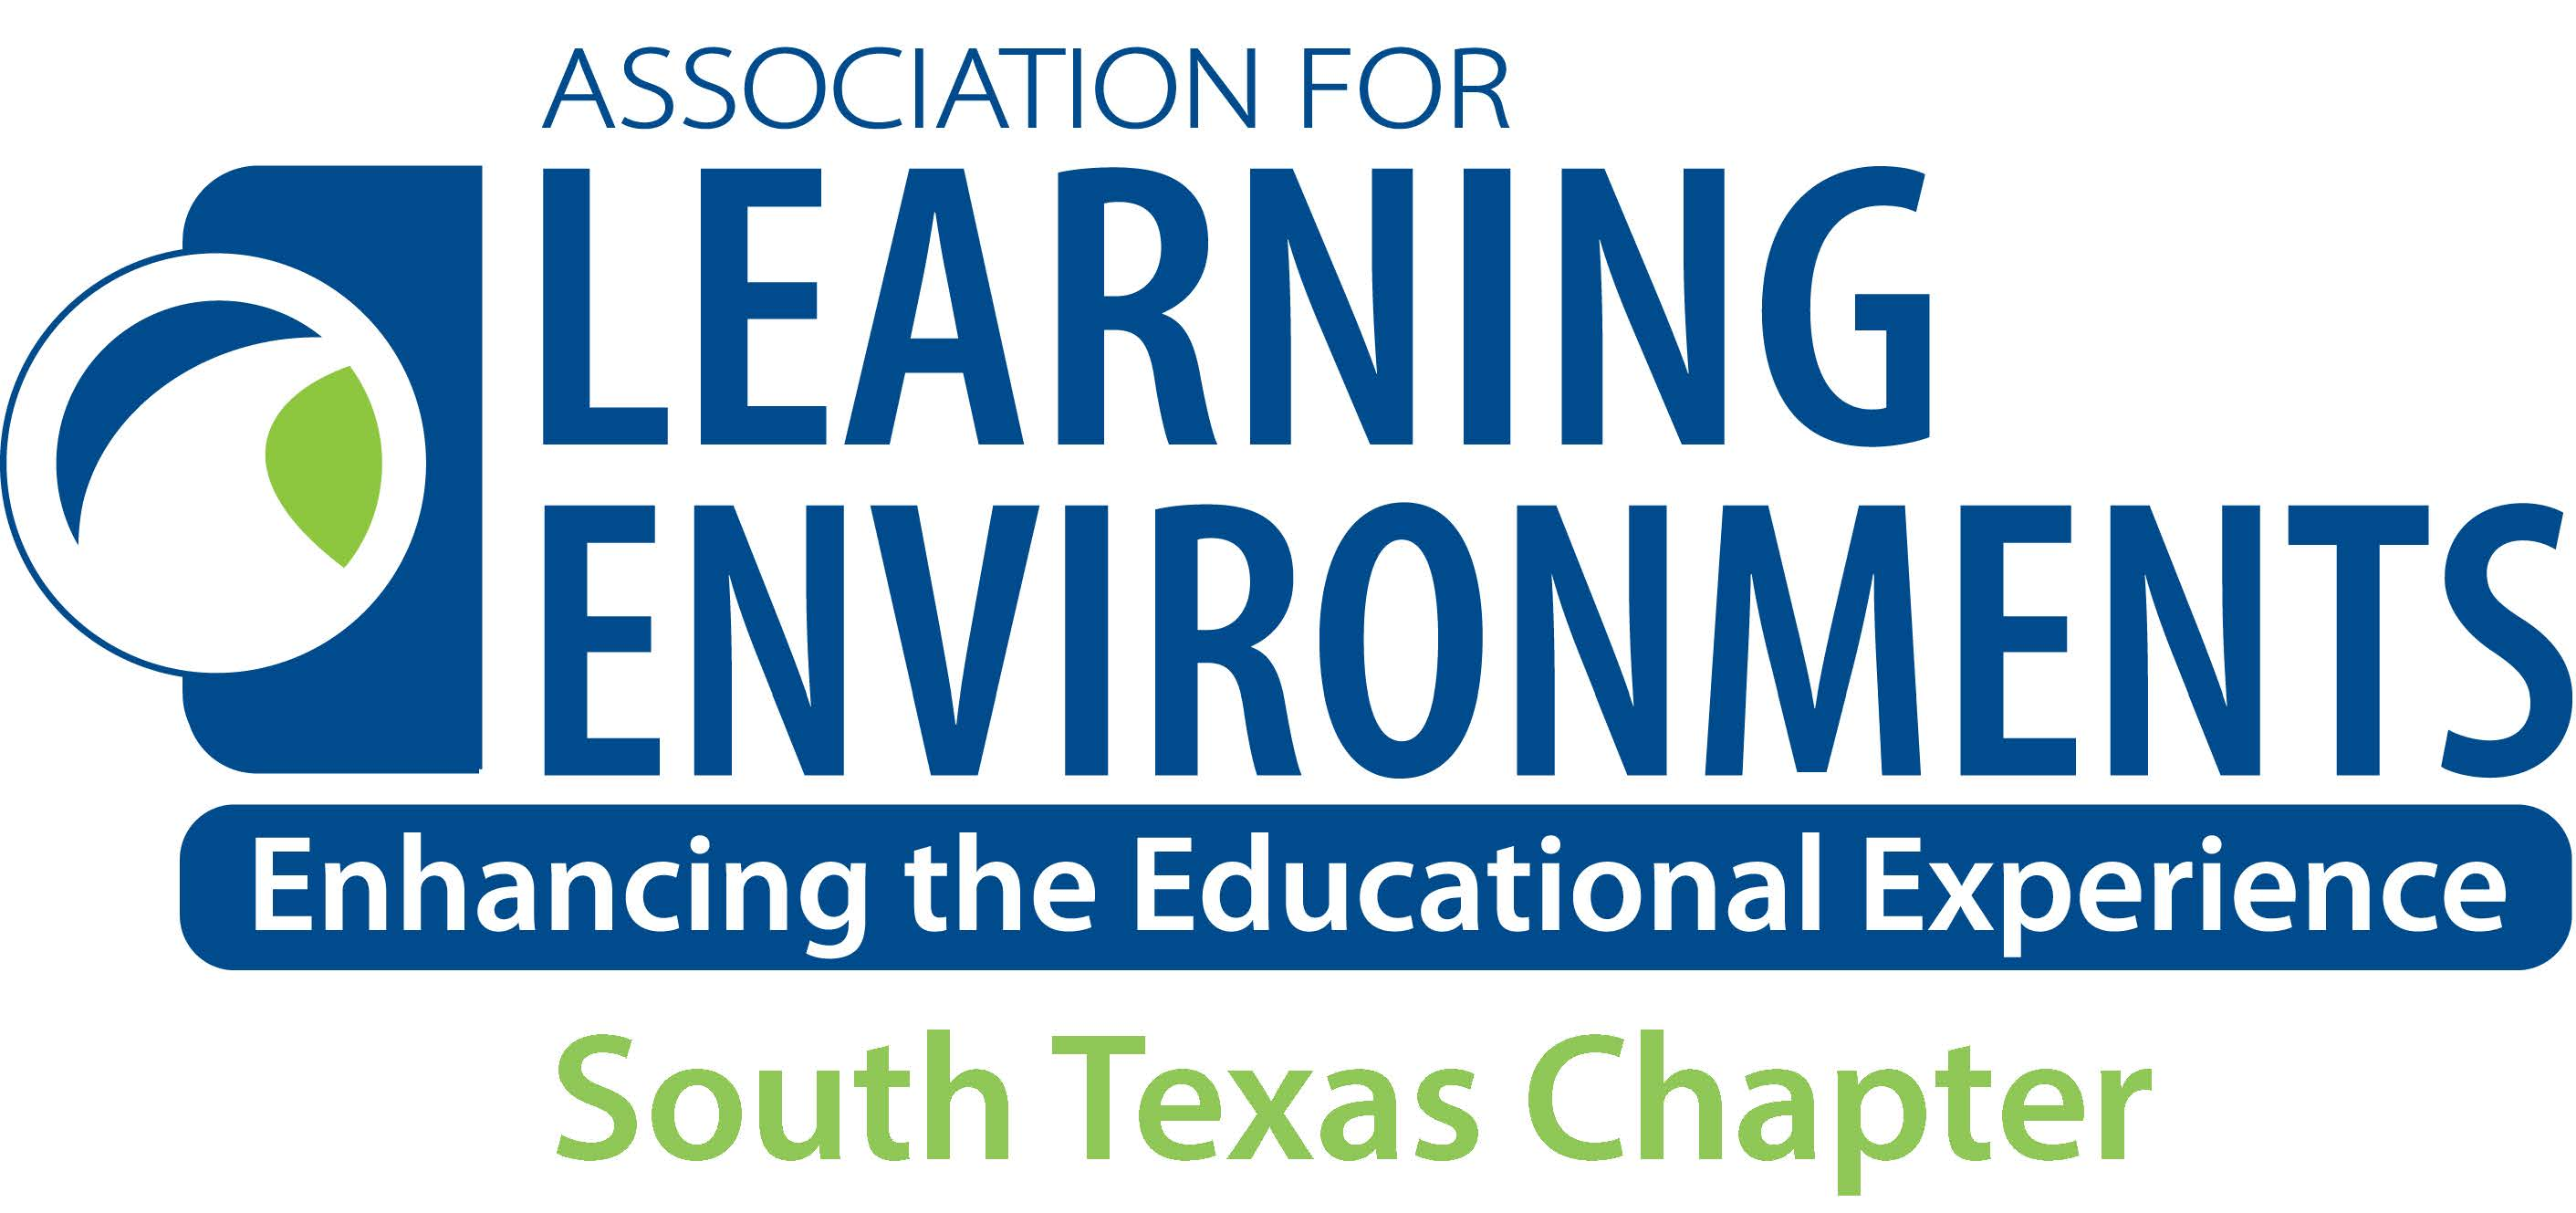 2019 South Texas Chapter Meeting - February